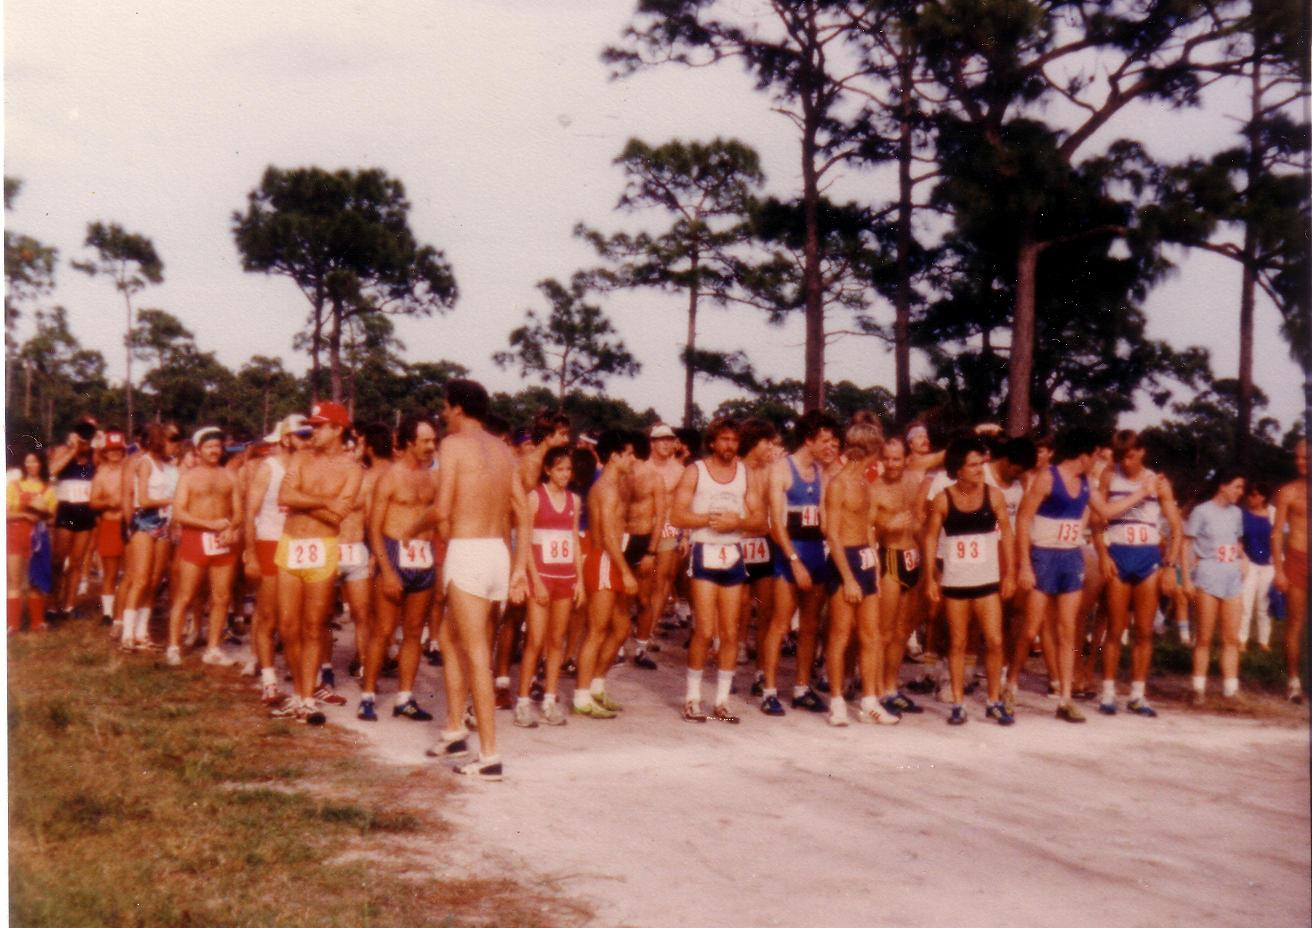 Space Coast Runners Calendar and Race Results